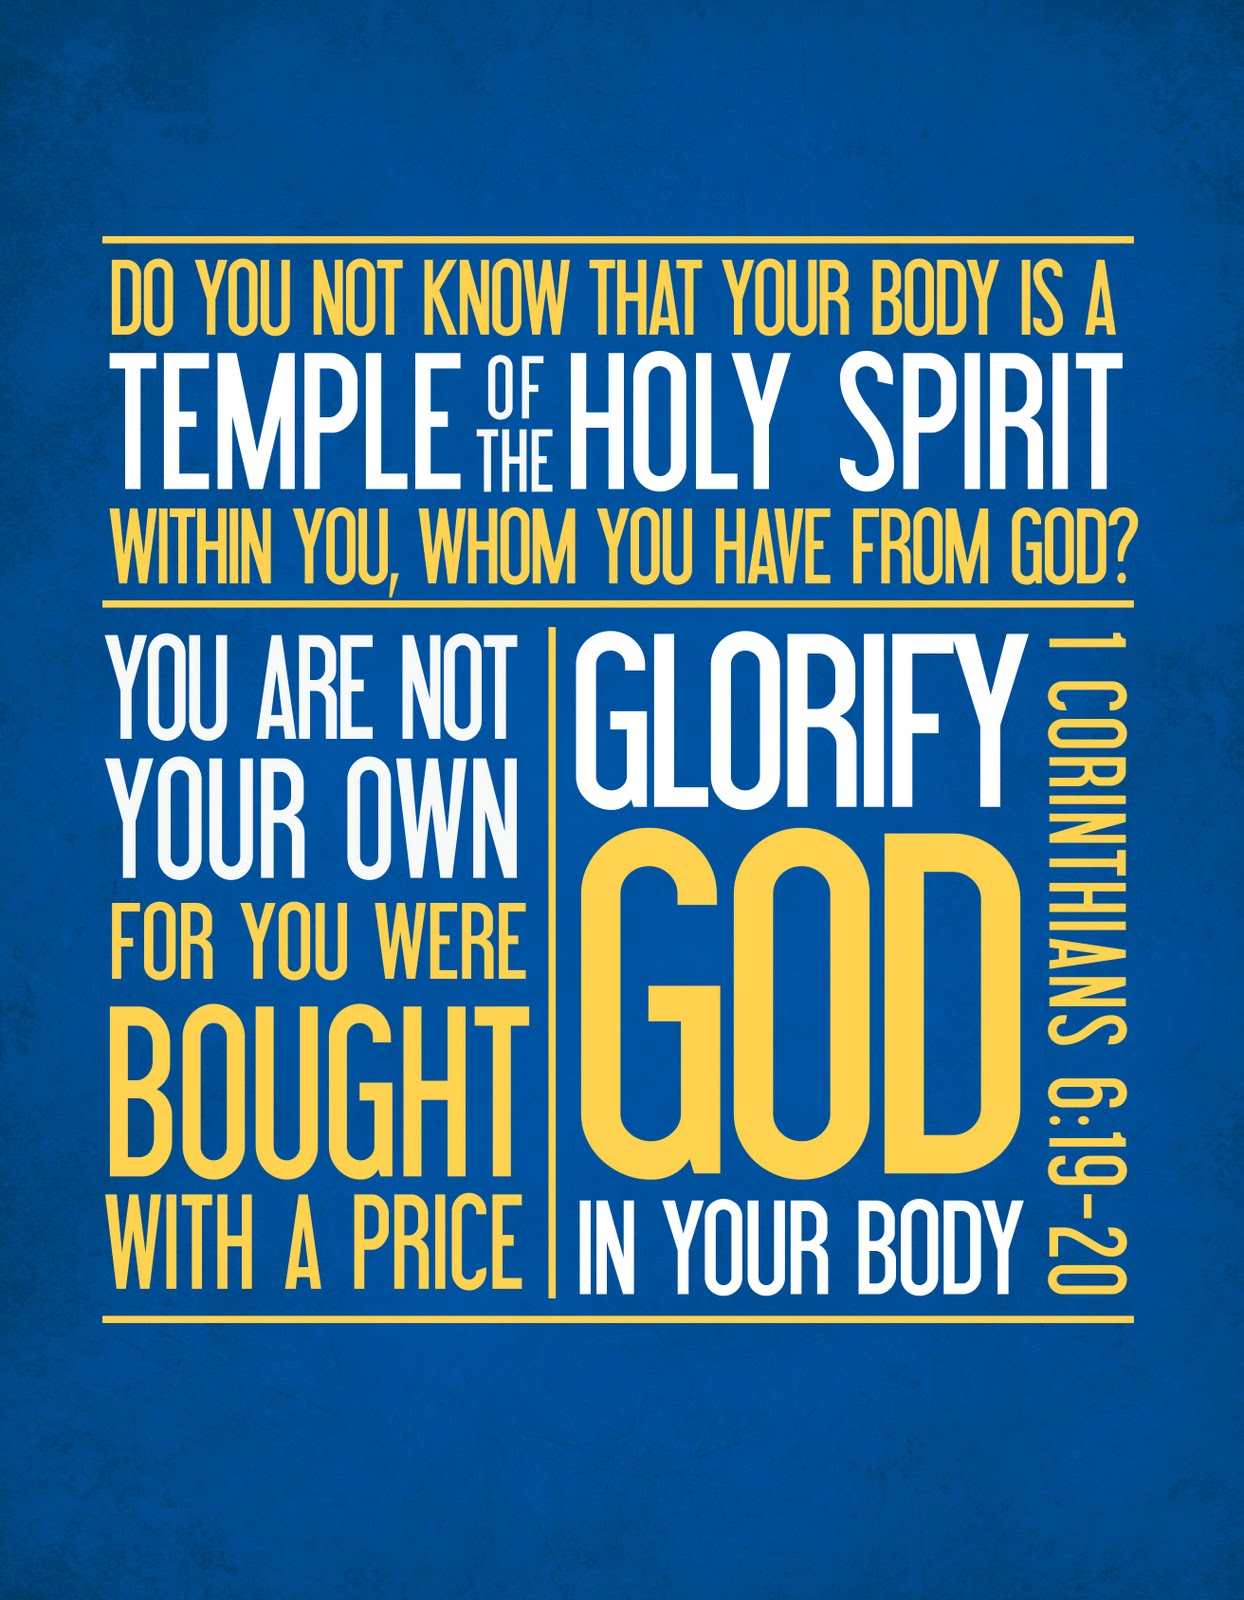 My Body Is A Temple Of God Clipart.